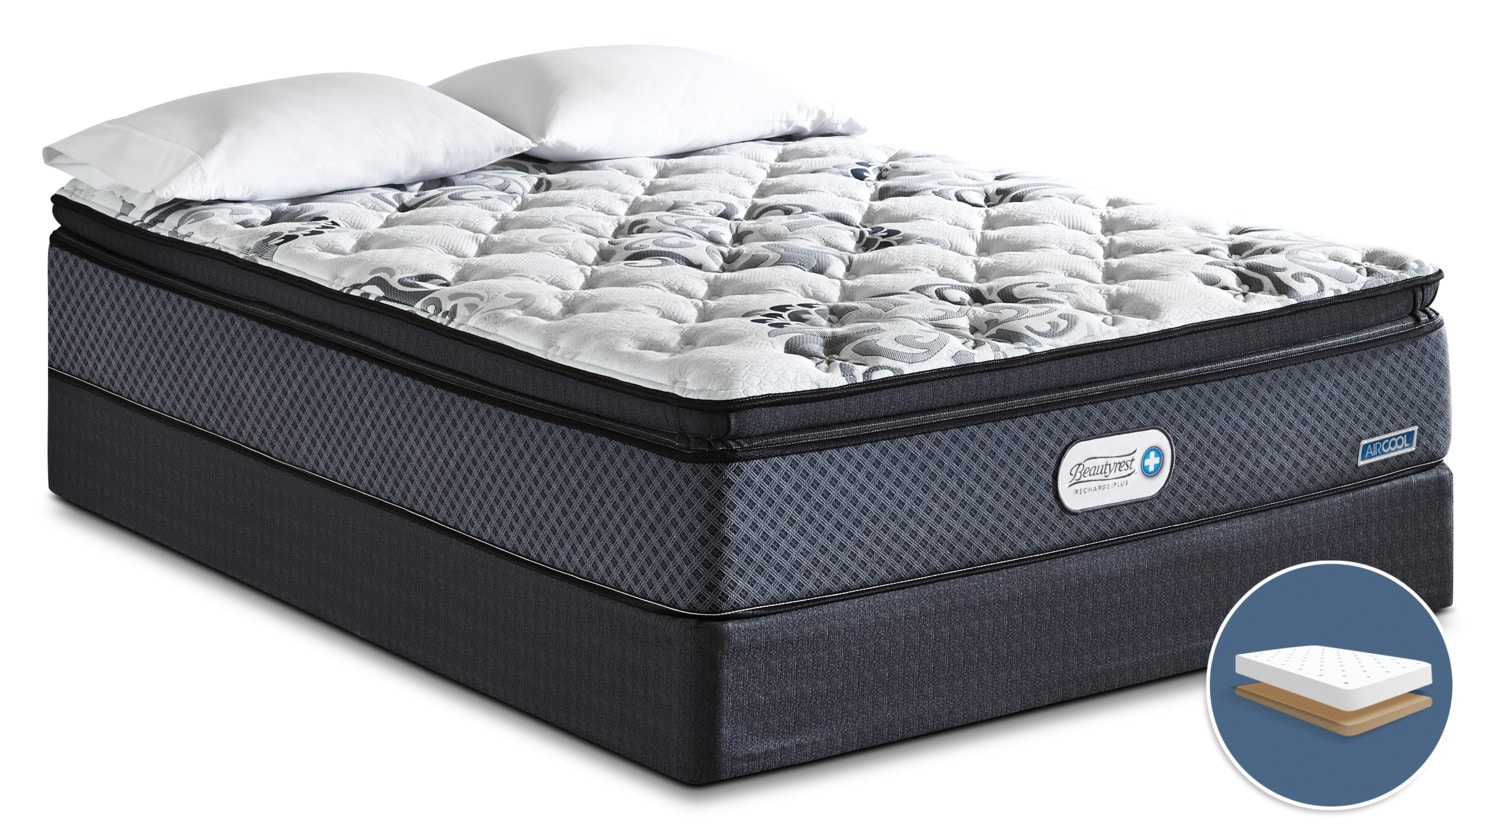 Beautyrest Recharge Inspire Hi-Loft Pillow-Top Firm Low-Profile Queen Mattress Set